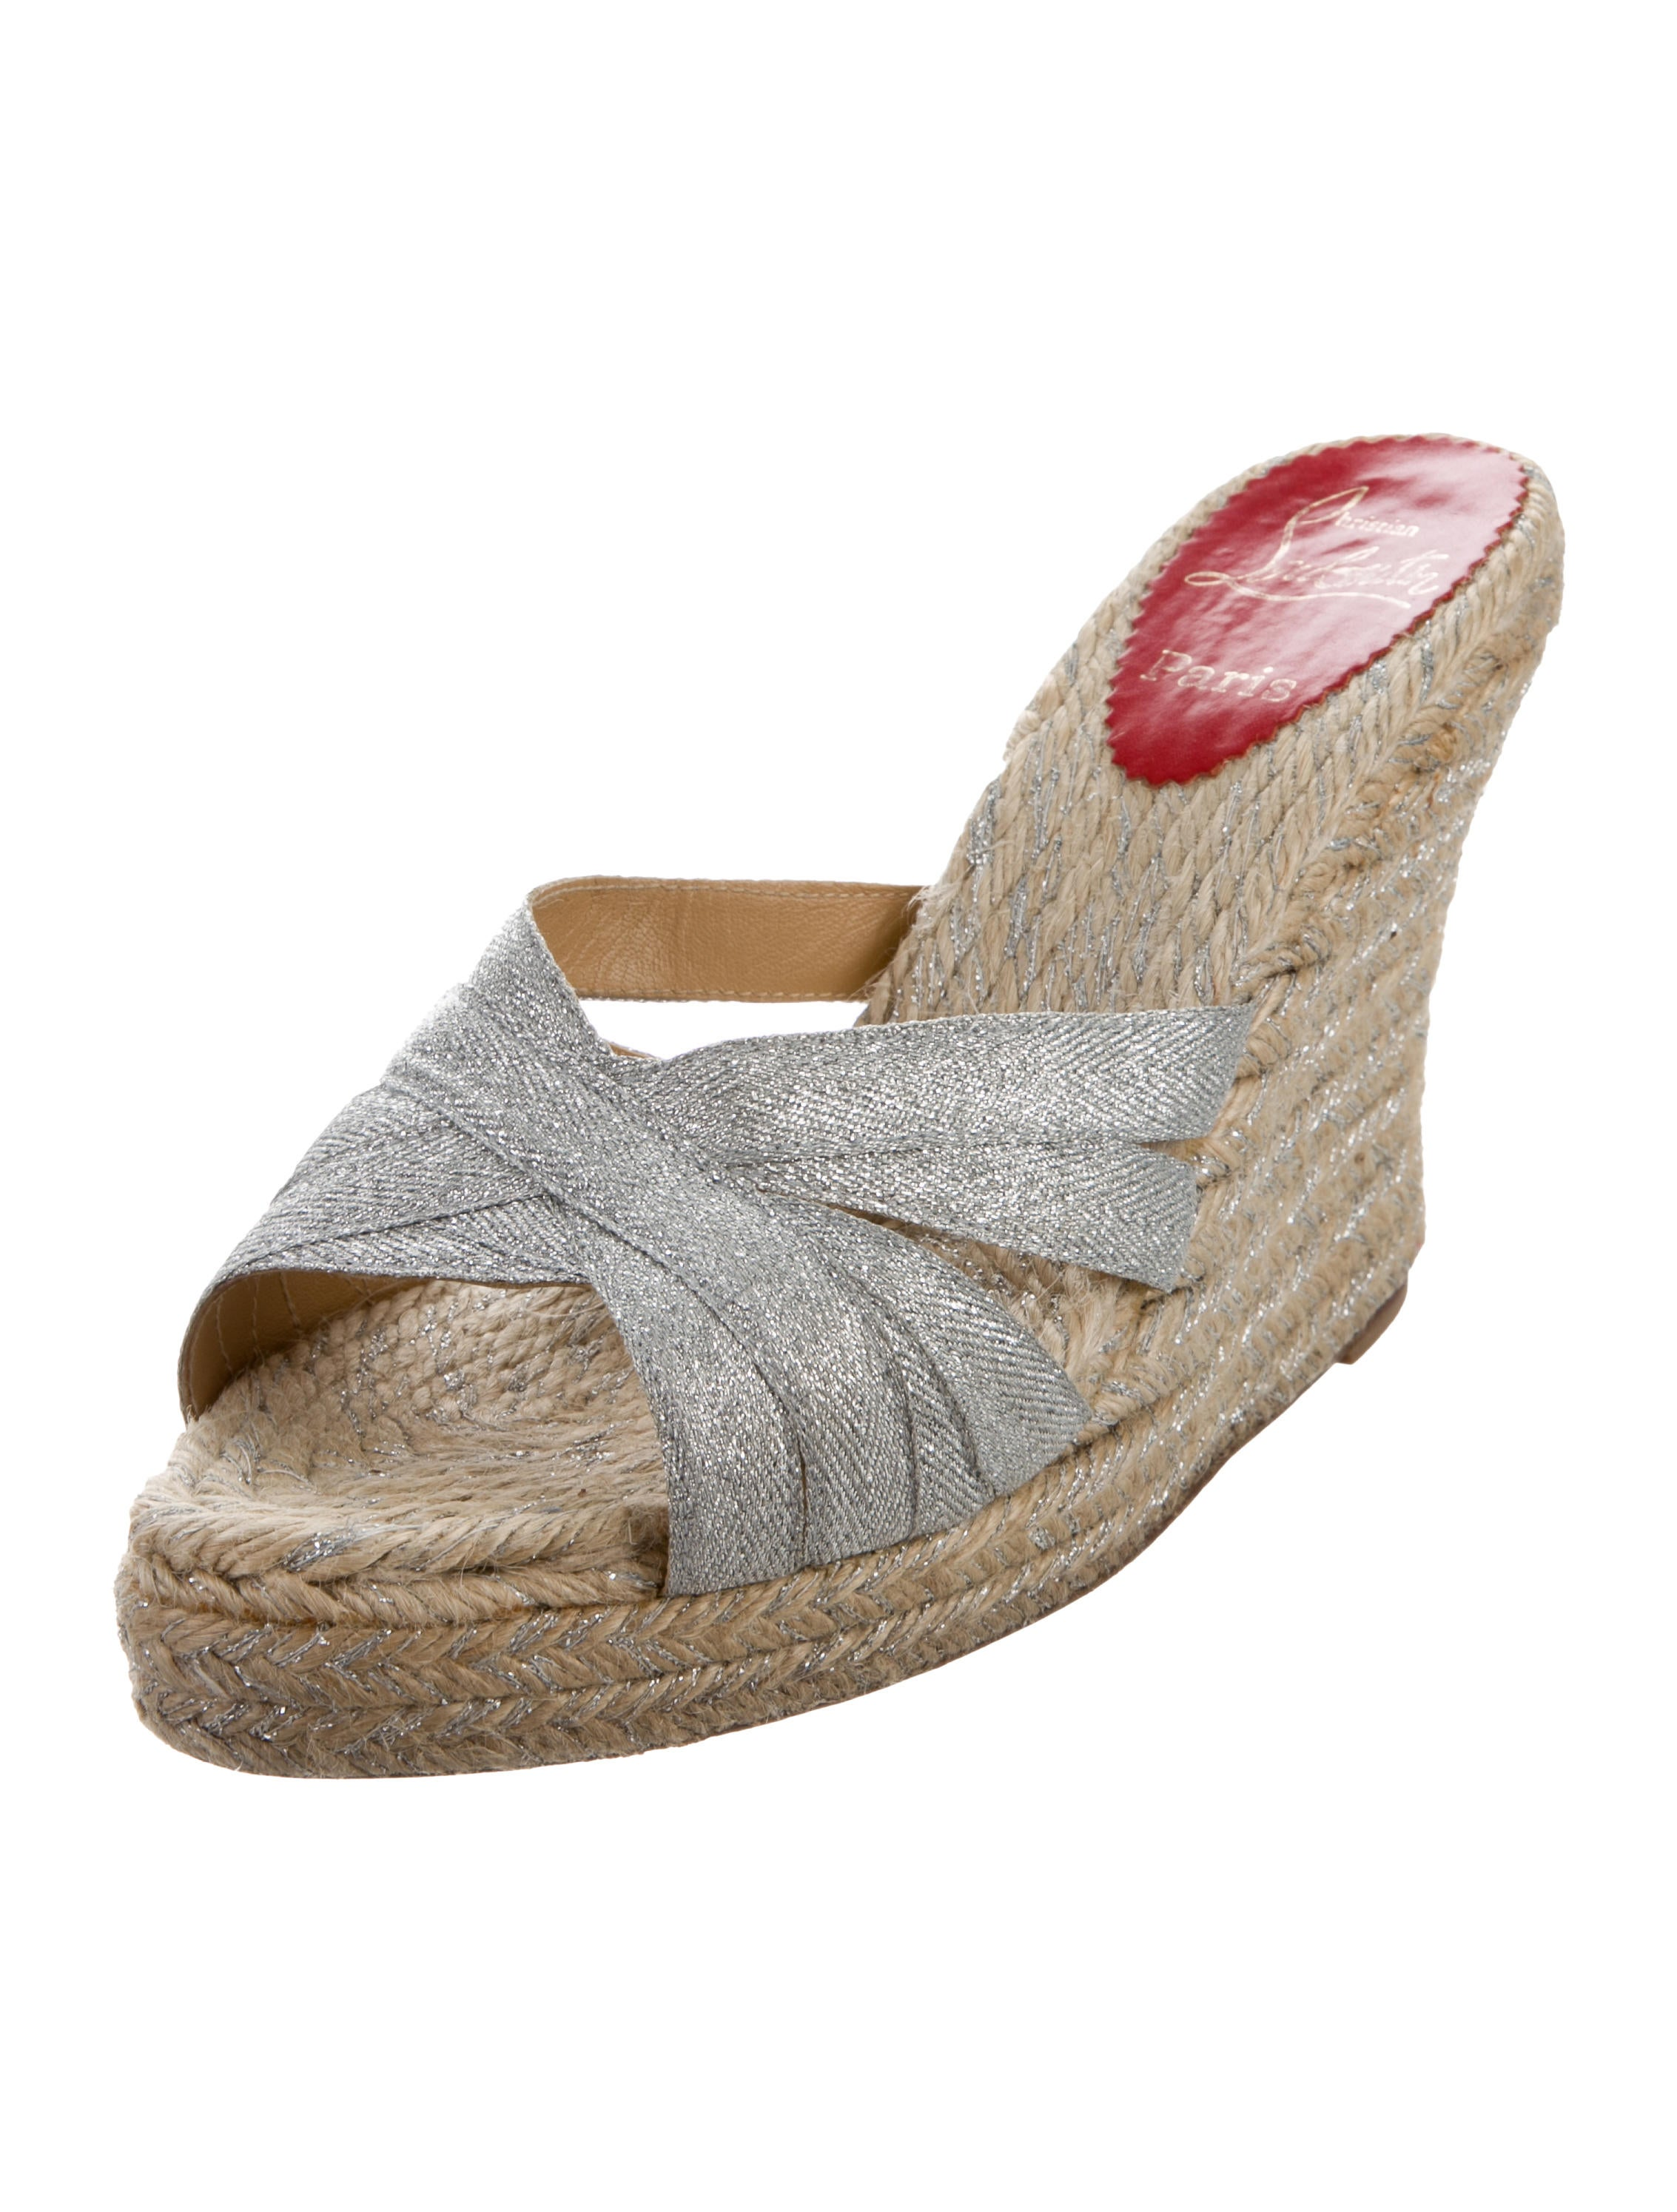 64027728839f Christian Louboutin Cataribbon Espadrille Wedges - Shoes - CHT100455 ...